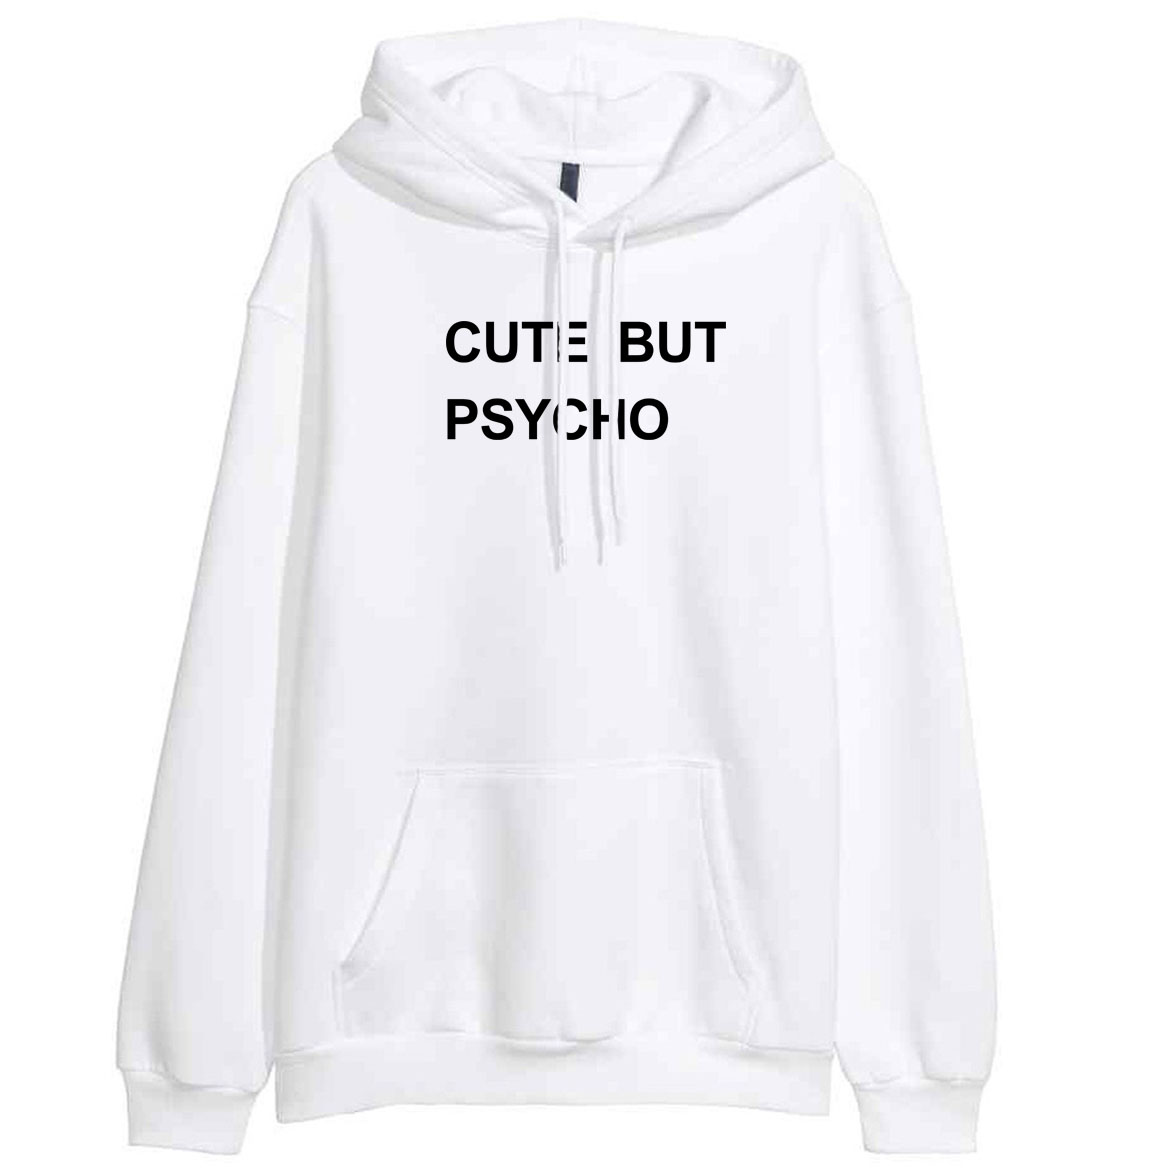 2019 Spring Fleece Winter Women's Sweatshirt Print fashion Casual Hoody For Women Kpop Clothes Hip Hop Pullover Female Hoodies